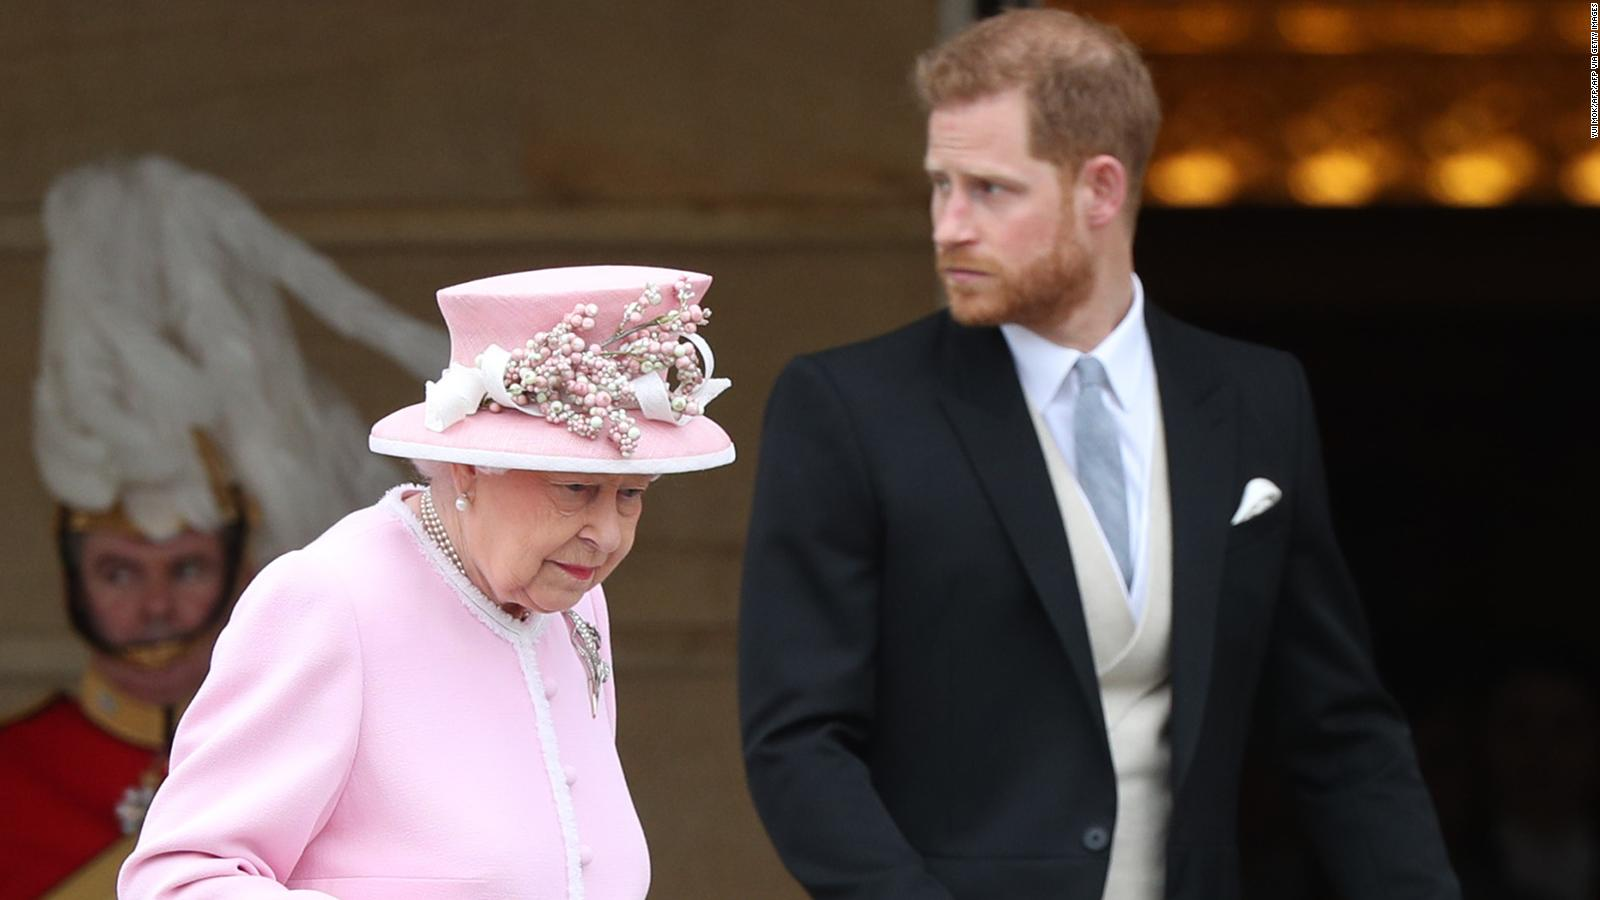 prince harry defied the queen by announcing he and meghan would step back from royal duties cnn how prince harry defied the queen